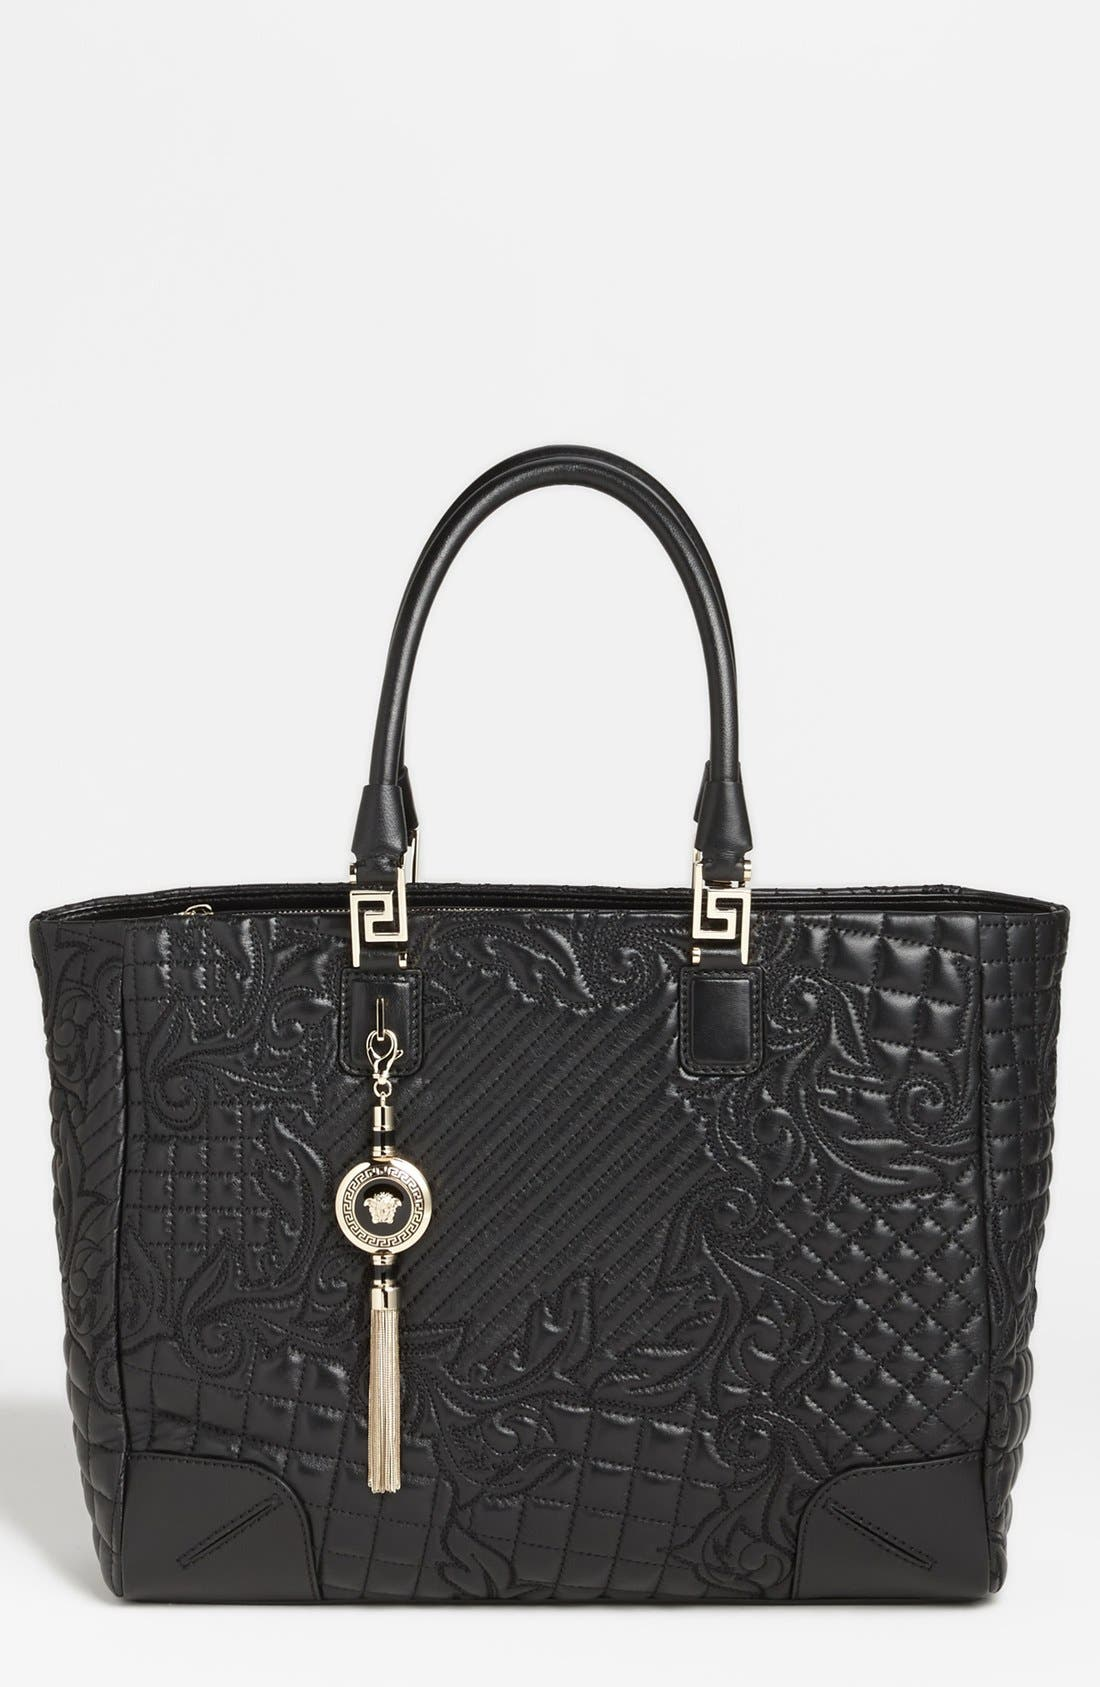 Main Image - Versace 'Vanitas' Embroidered Leather Tote